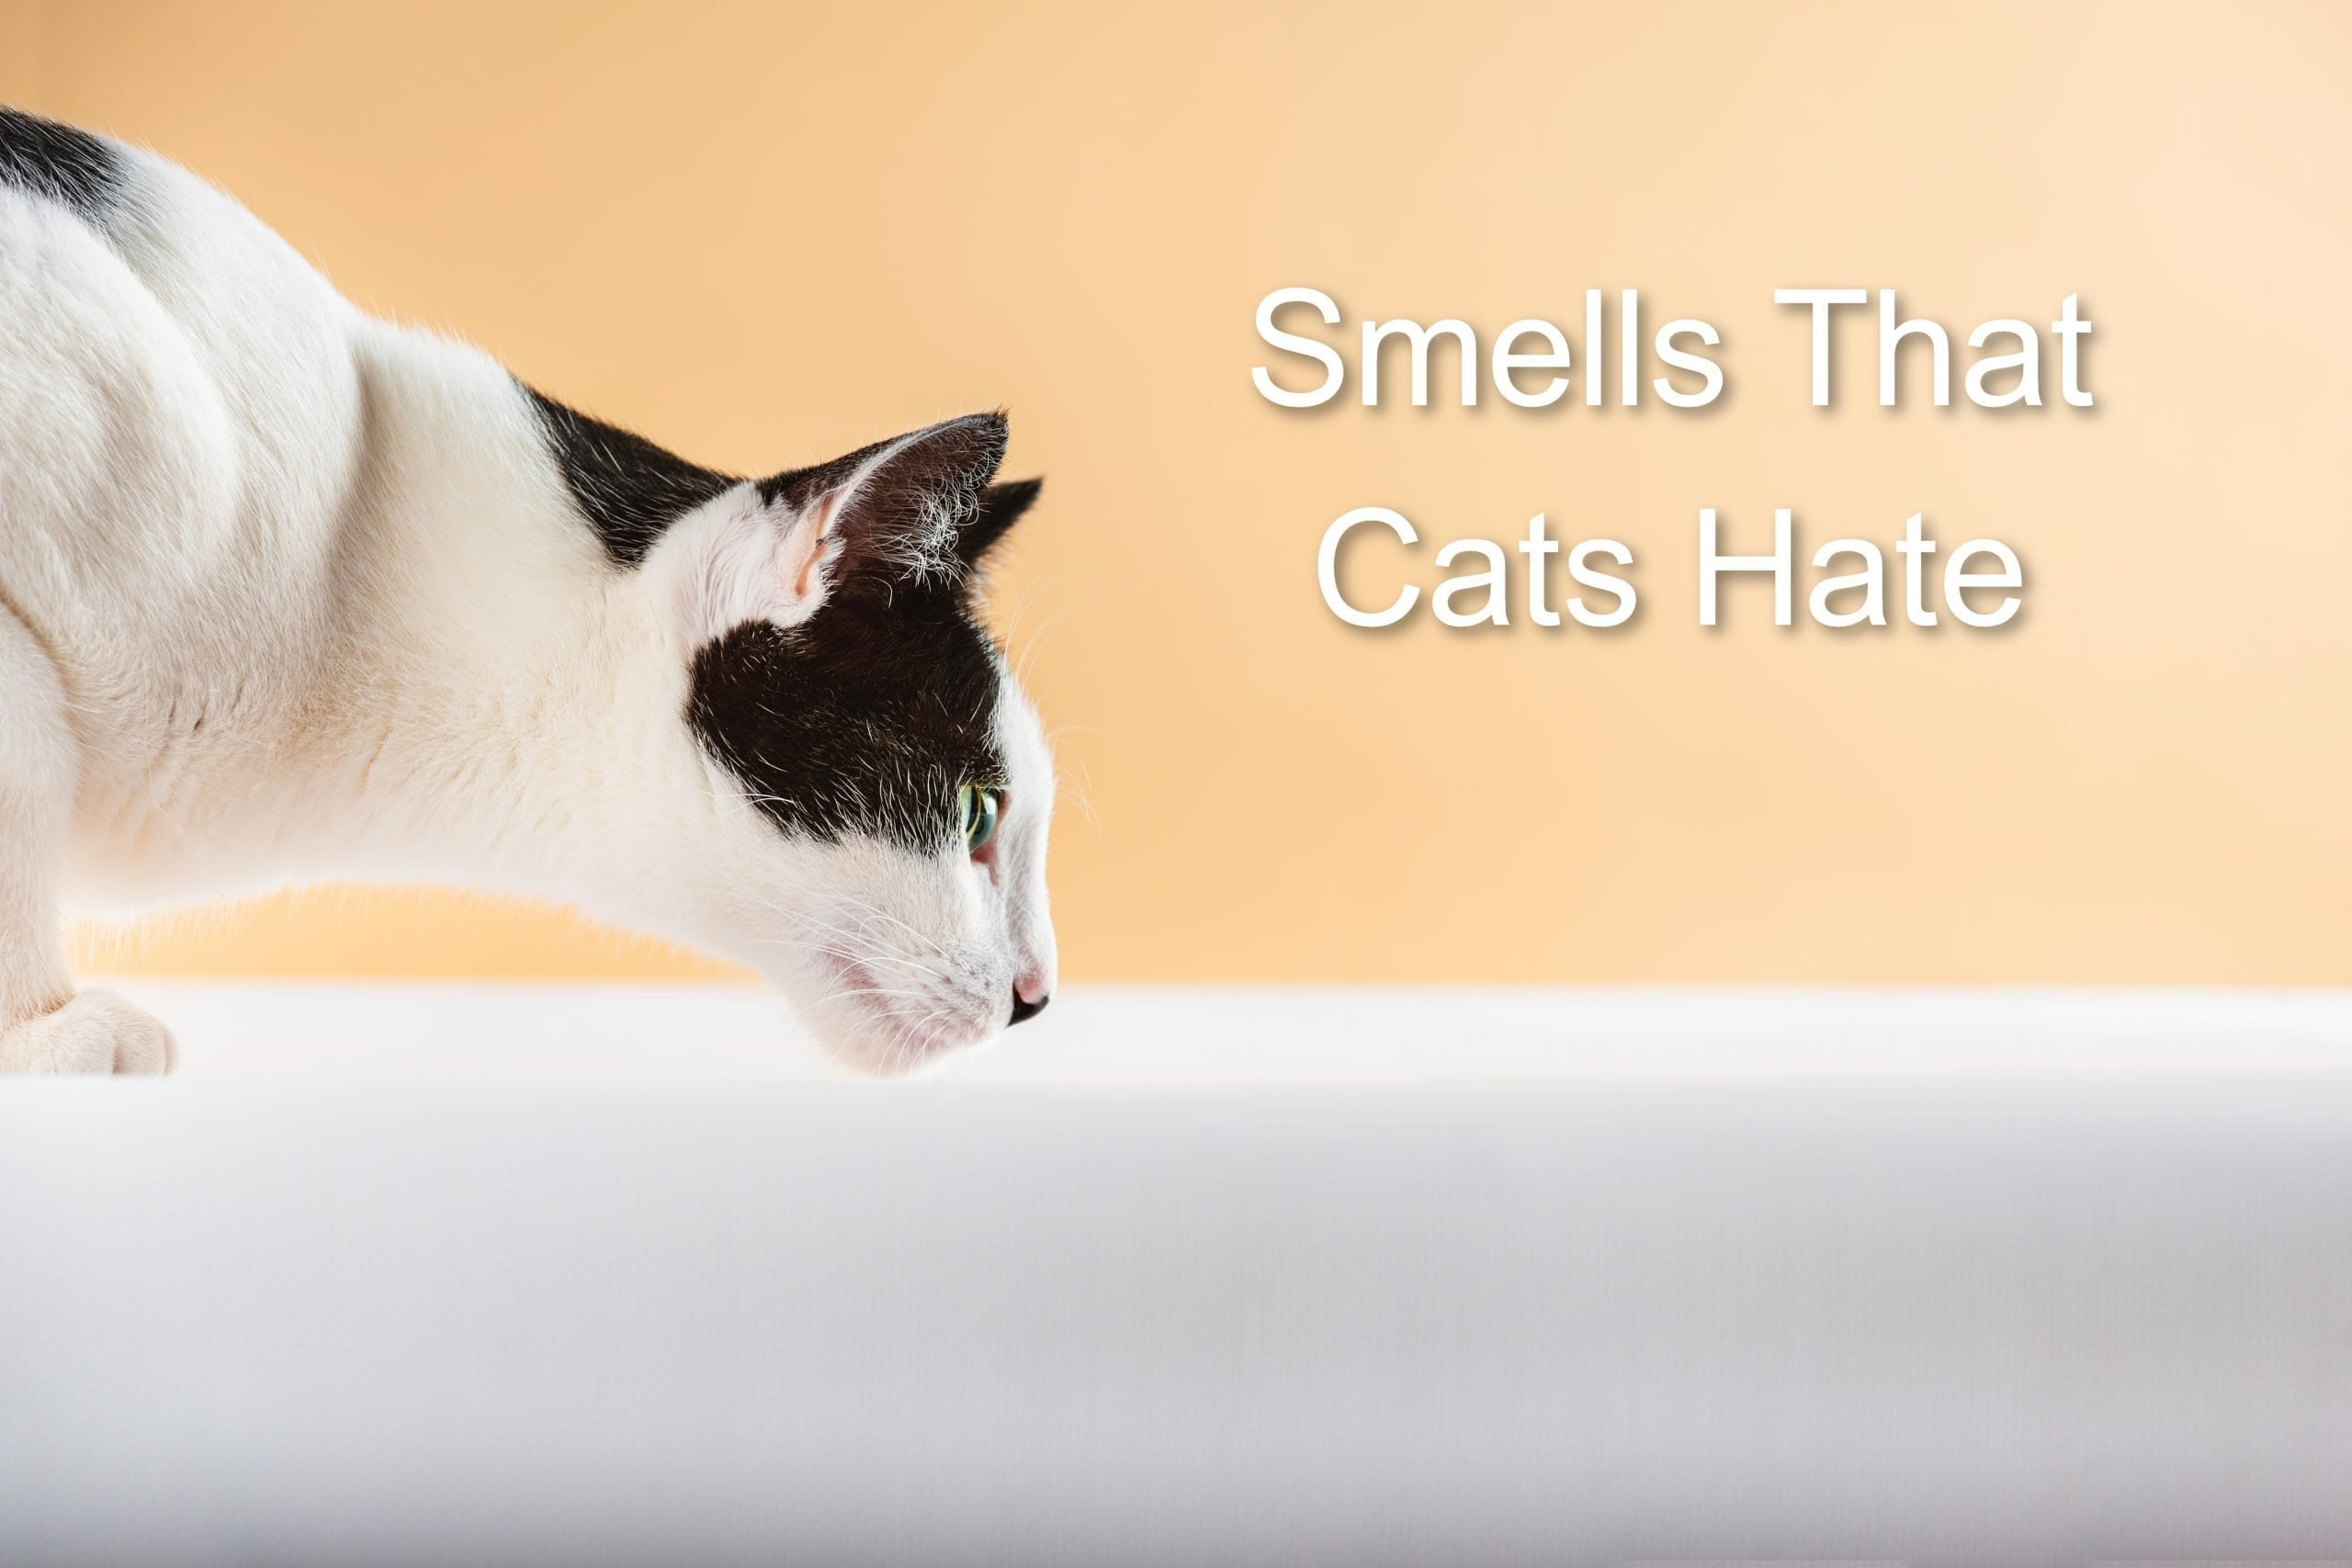 Smells That Cats Hate